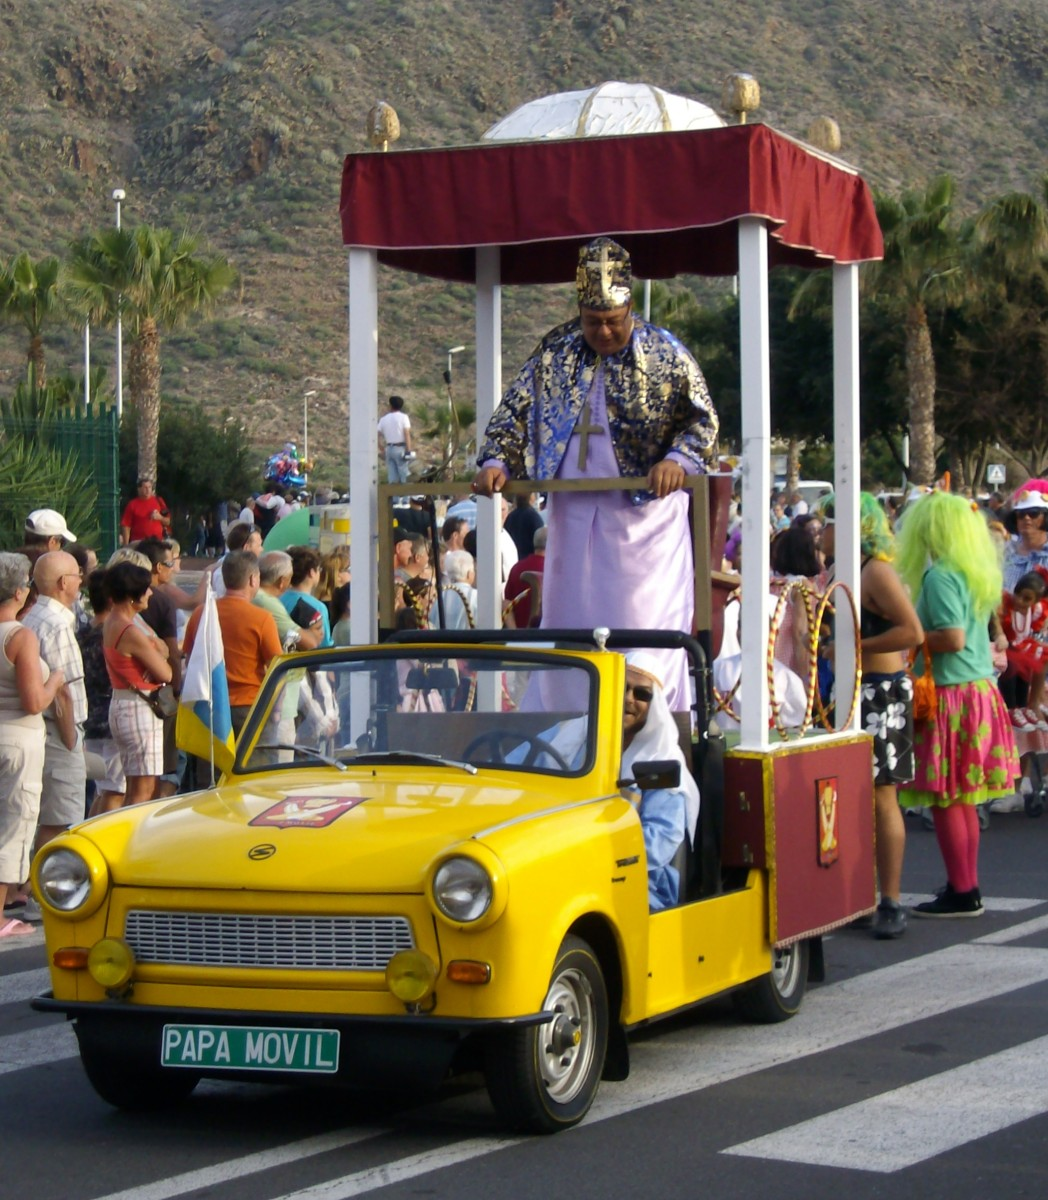 Carnaval in Los Cristianos, Tenerife - March 2010